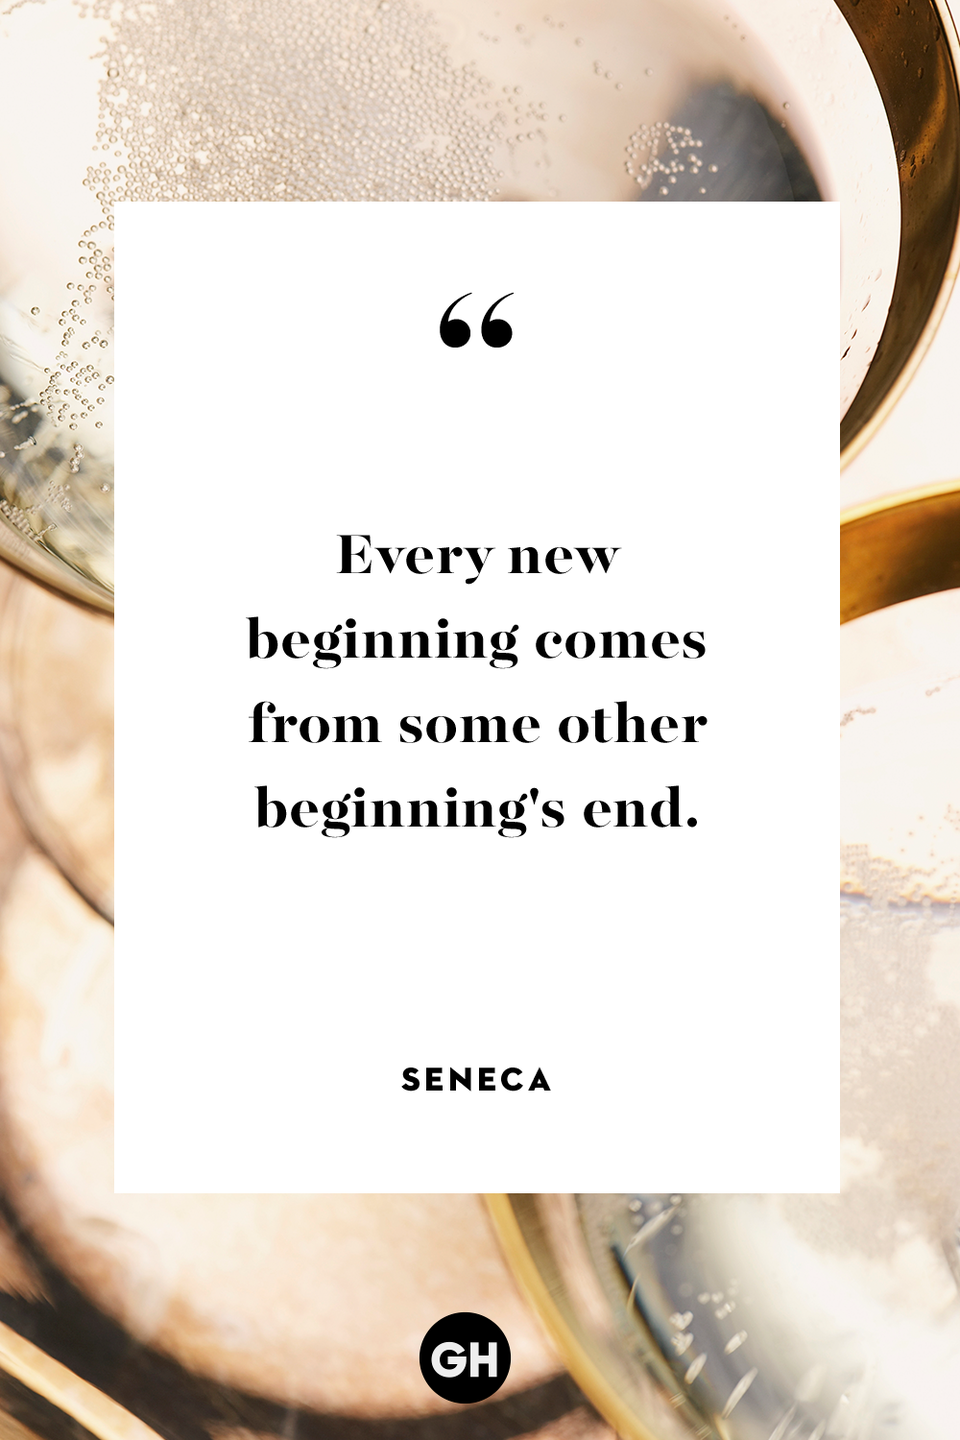 <p>Every new beginning comes from some other beginning's end.</p>